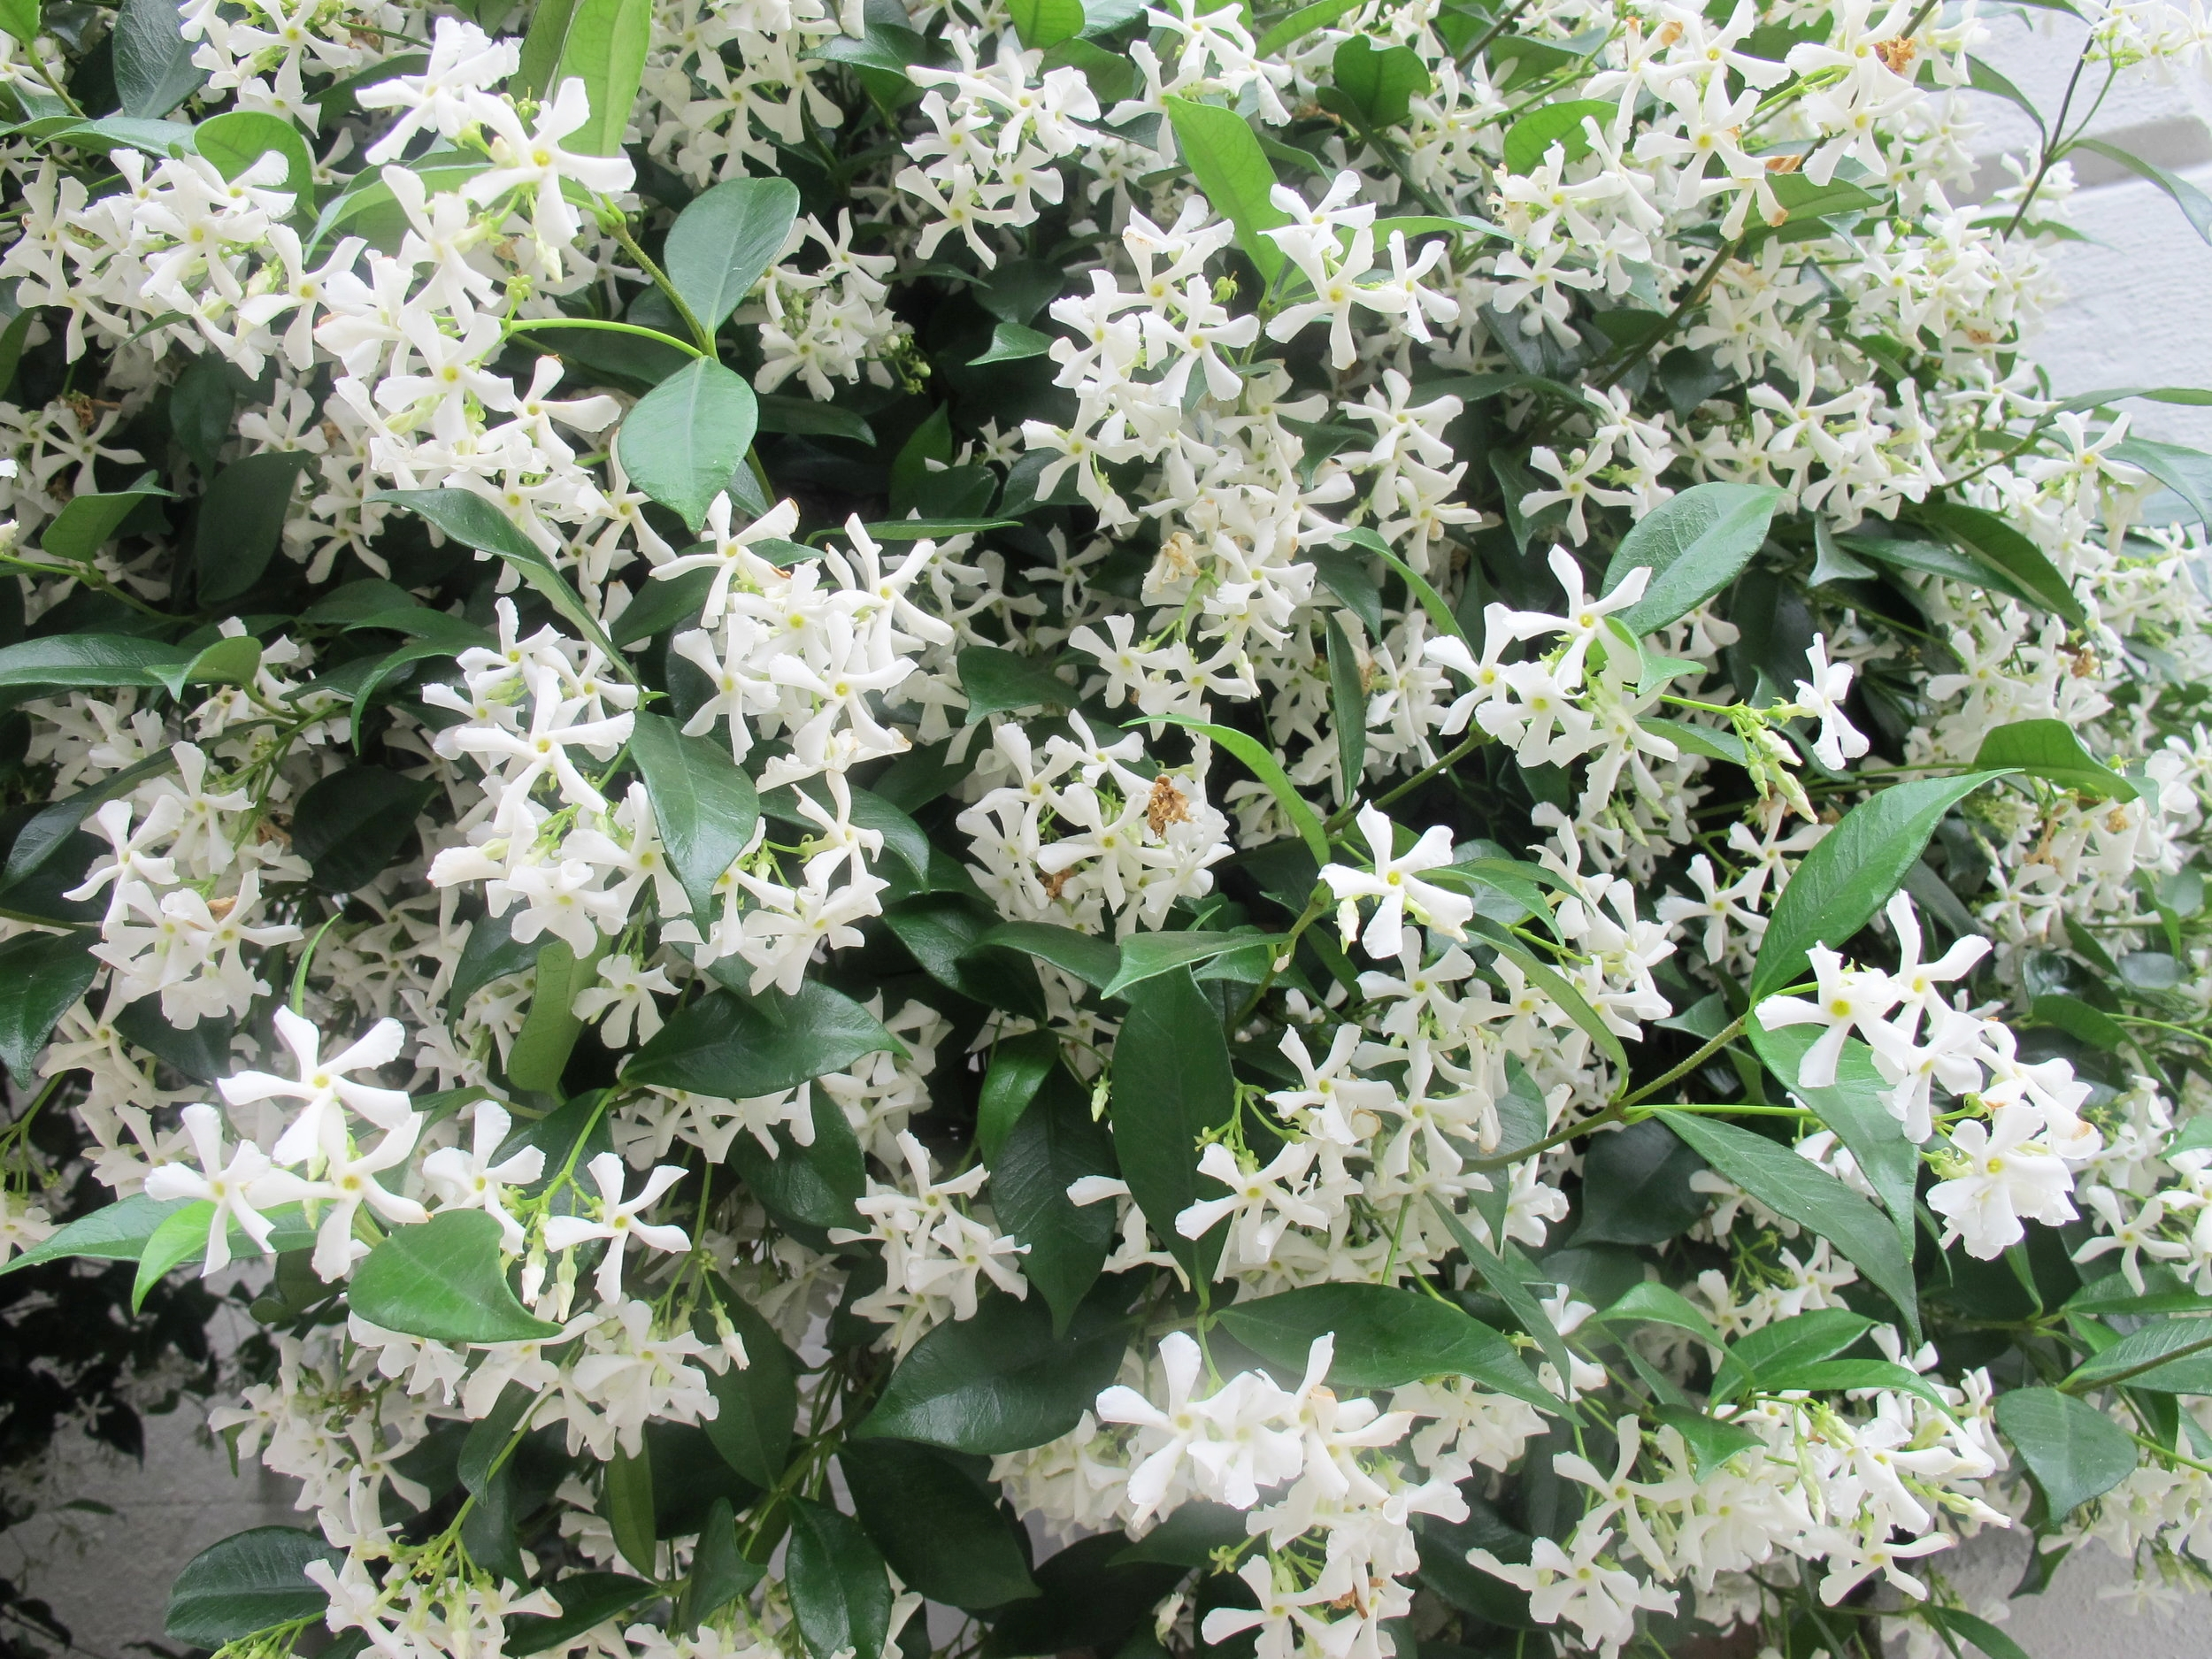 The Confederate Jasmine smelled amazing and lingered throughout the entire city.